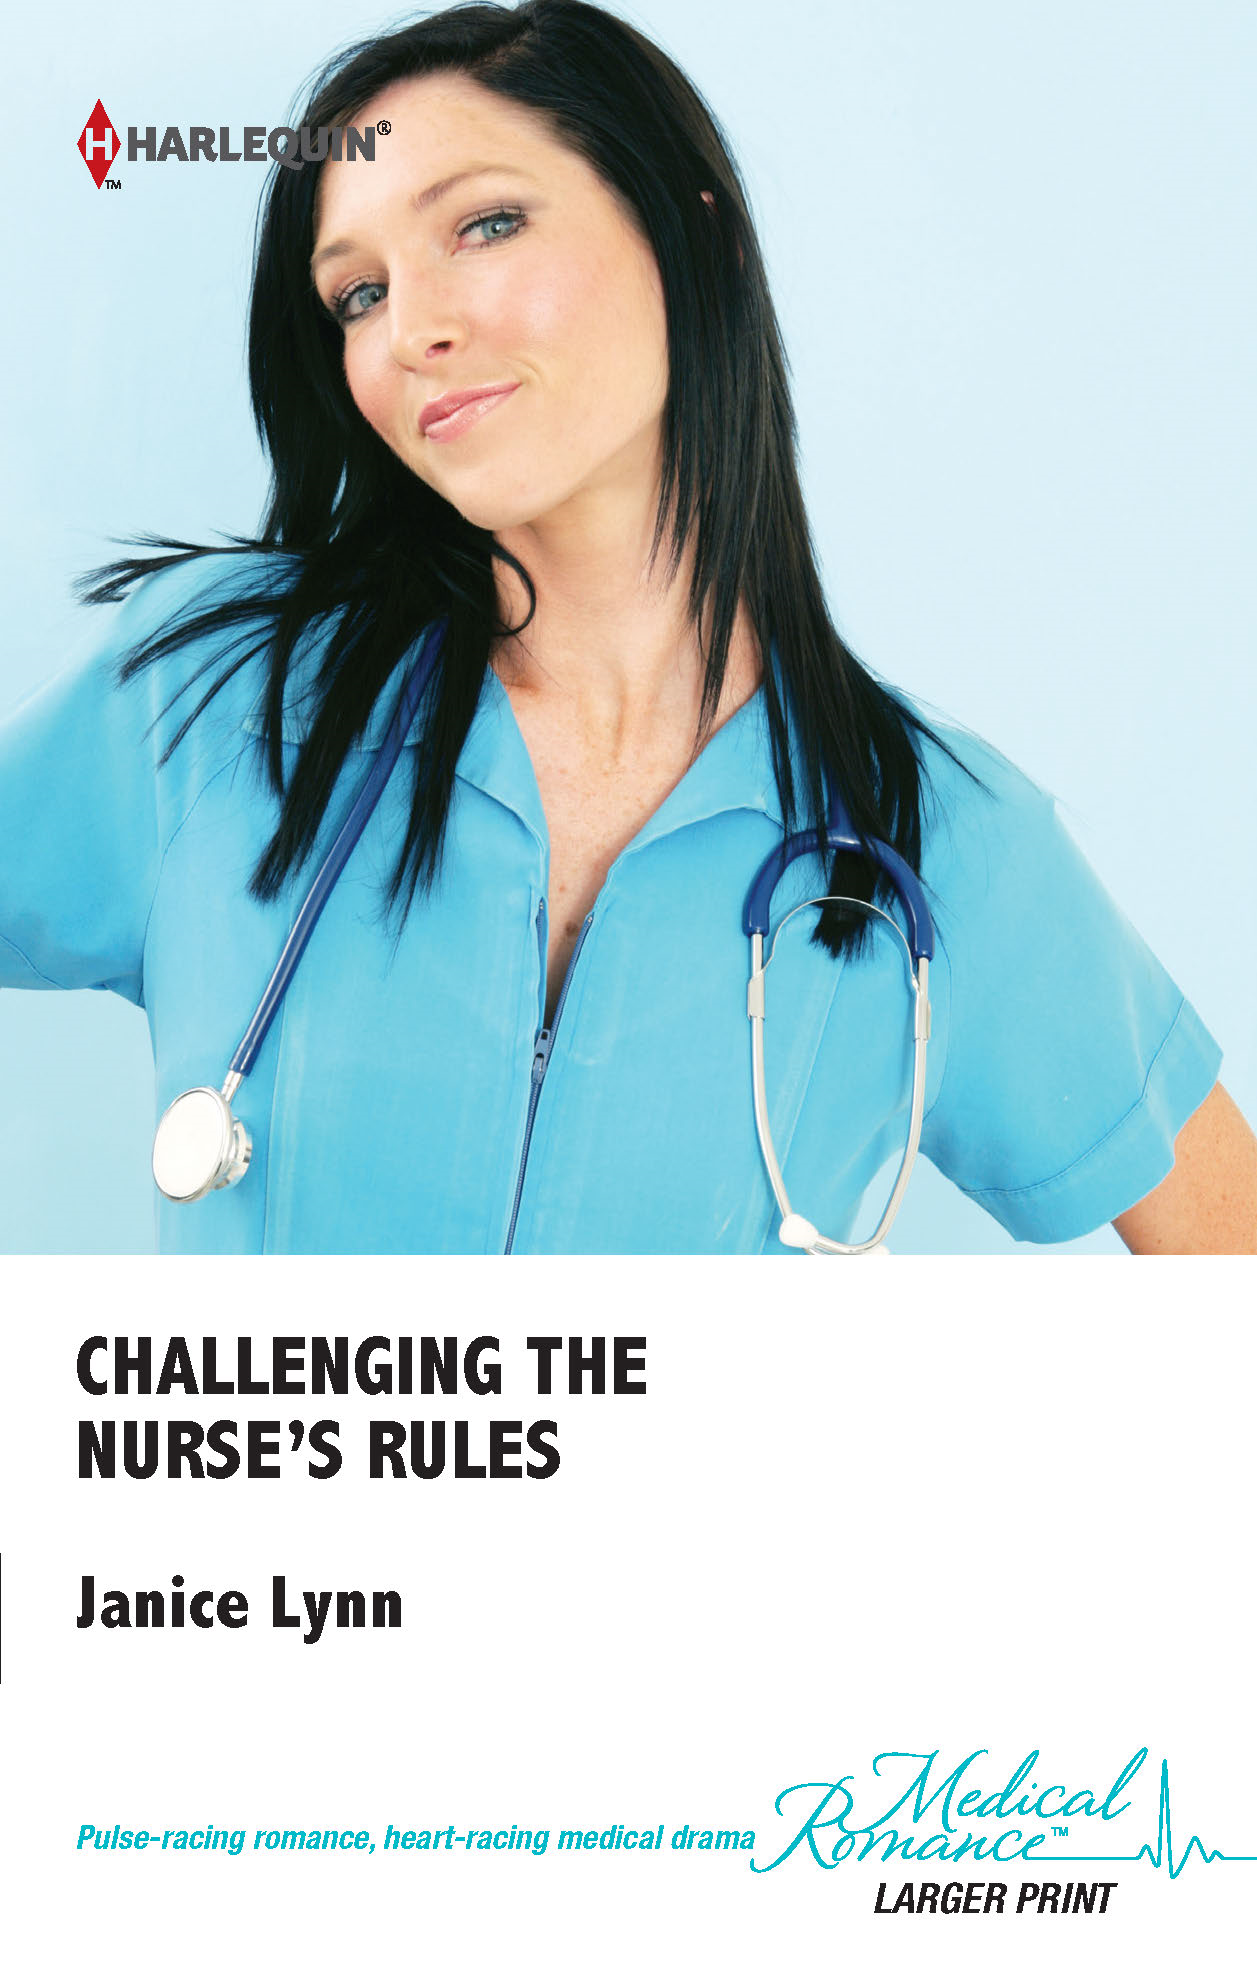 Challenging the Nurse's Rules